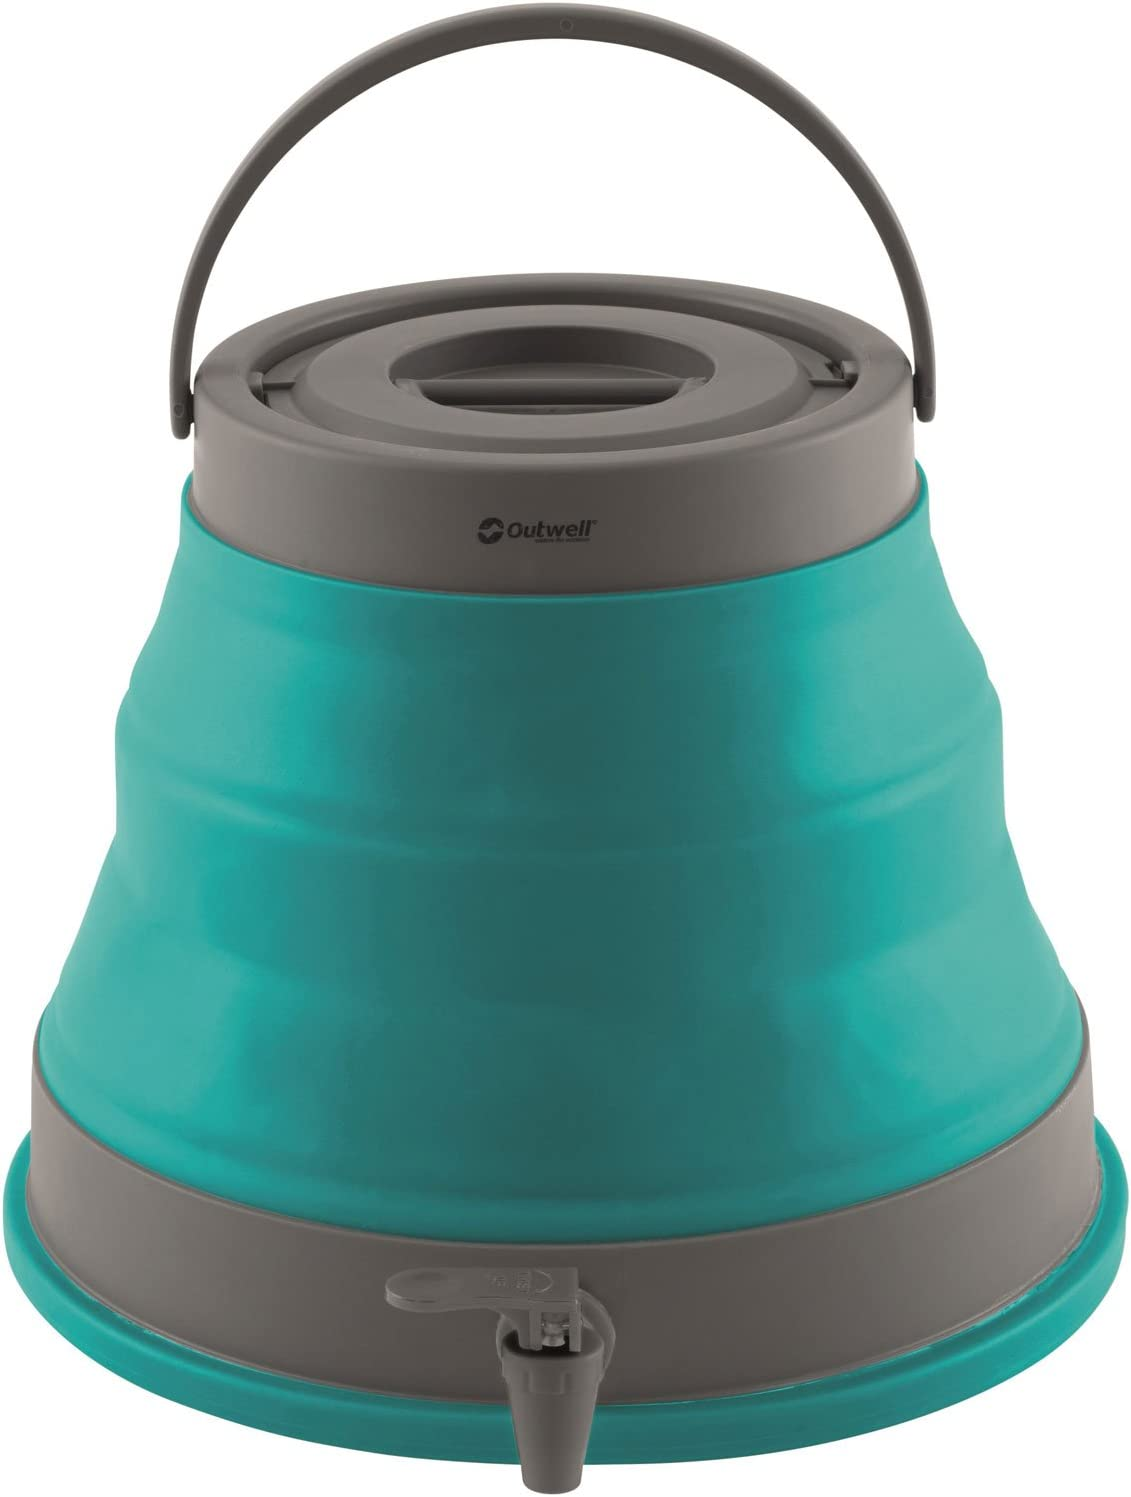 Outwell 12 Litre Collaps Water Carrier